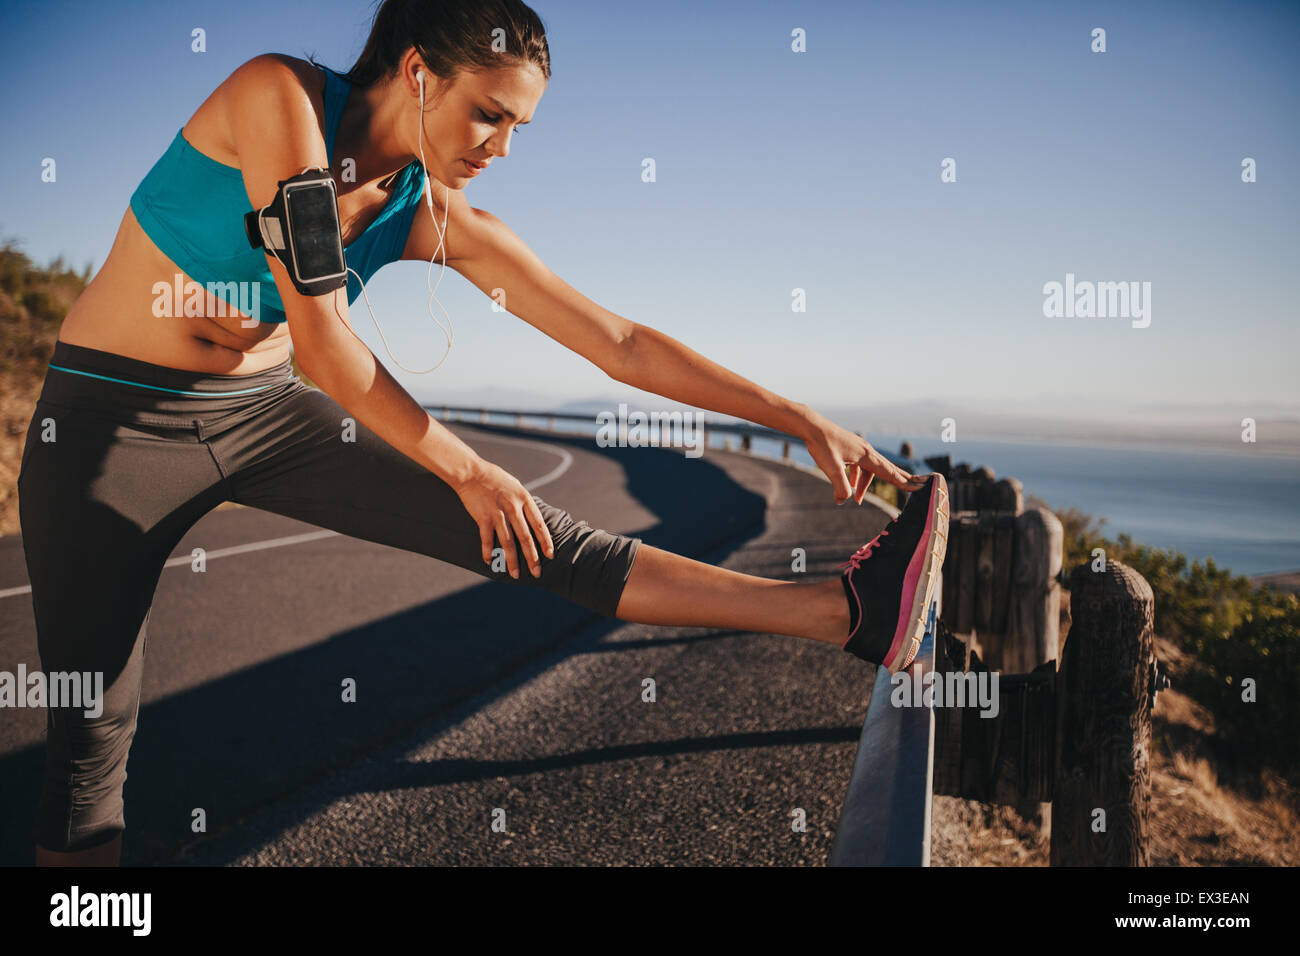 Female runner stretching her legs outdoor before running. Woman doing leg stretch exercises on road guardrail. - Stock Image